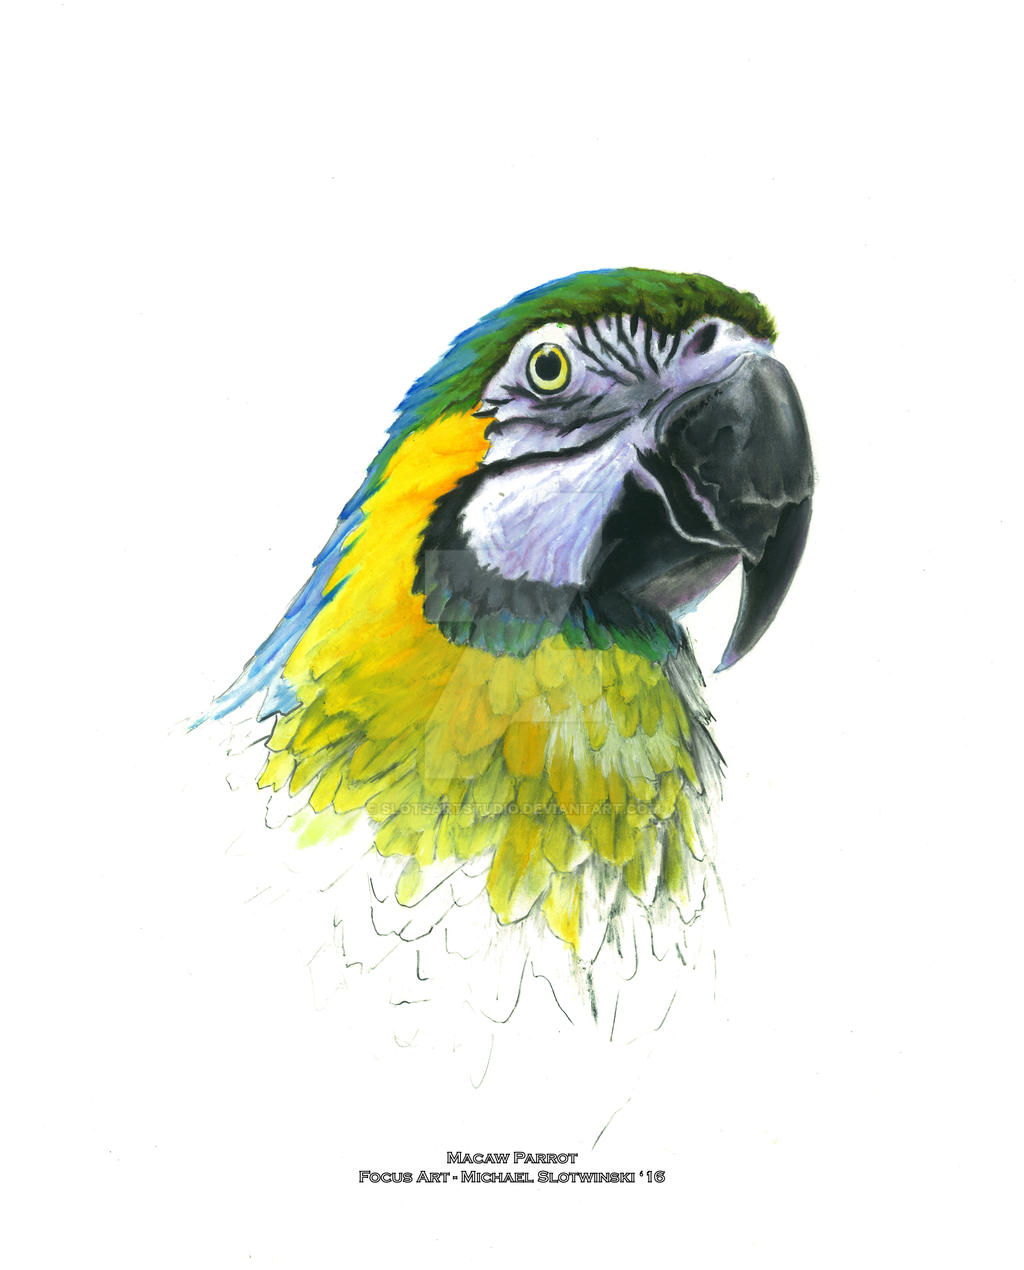 blue green and yellow macaw parrot focus art by slotsartstudio